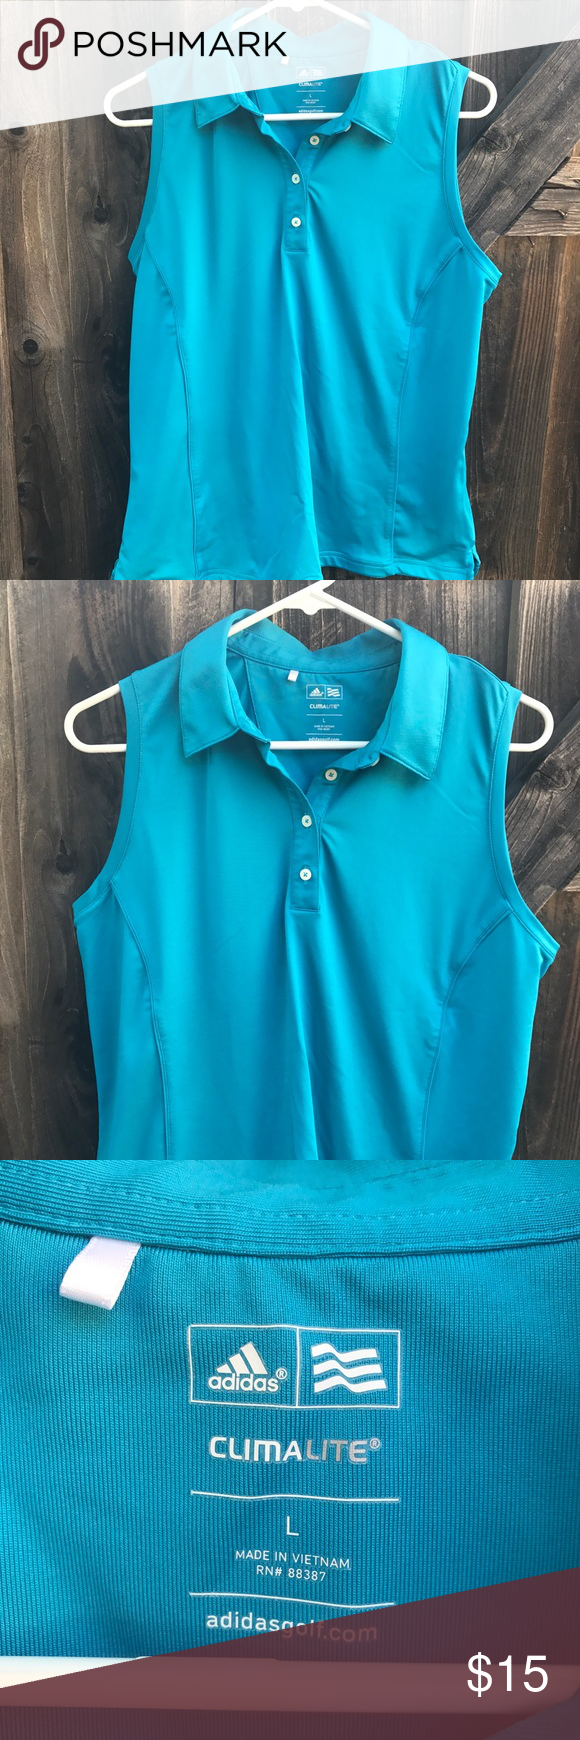 777878fd10ade3 Adidas women golf tank top Adidas women Clima lite golf tank top No stains  or rips Size large Length 25 Armpit to armpit 19.5 Shoulder to shoulder  13.5 L16 ...